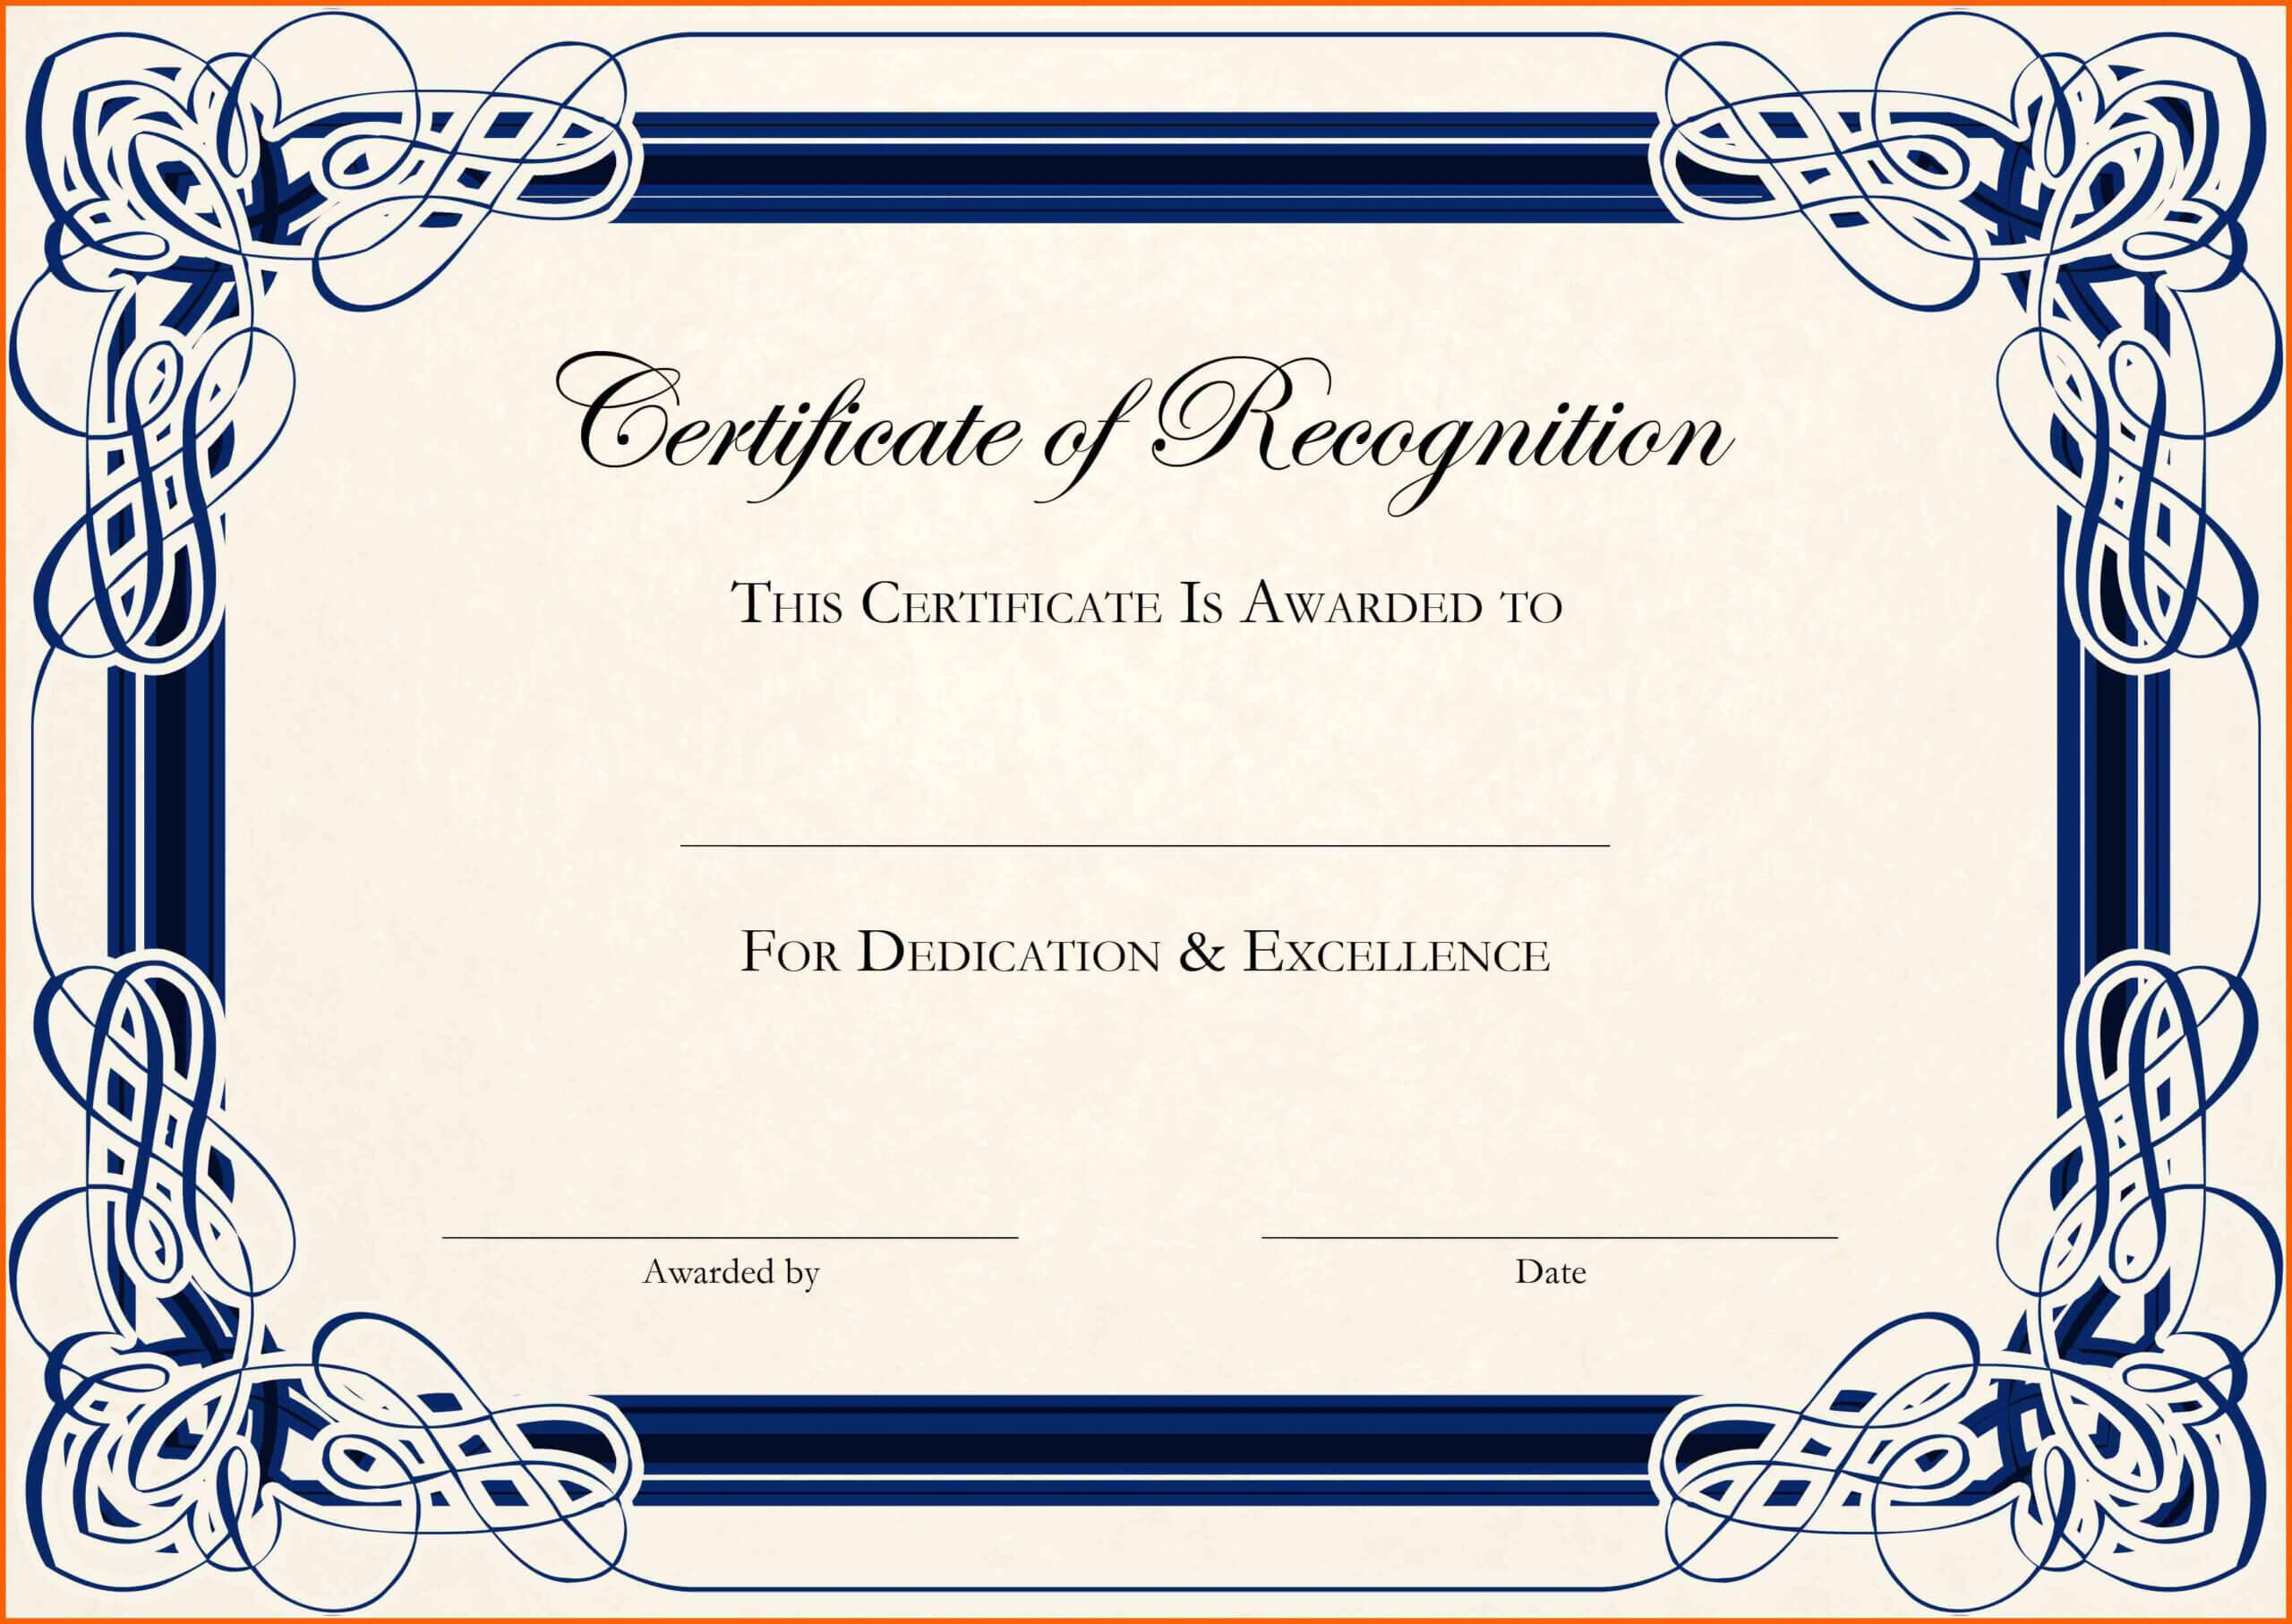 11+ Free Downloads Certificate Templates In Word | Ml Datos Regarding Certificate Templates For Word Free Downloads